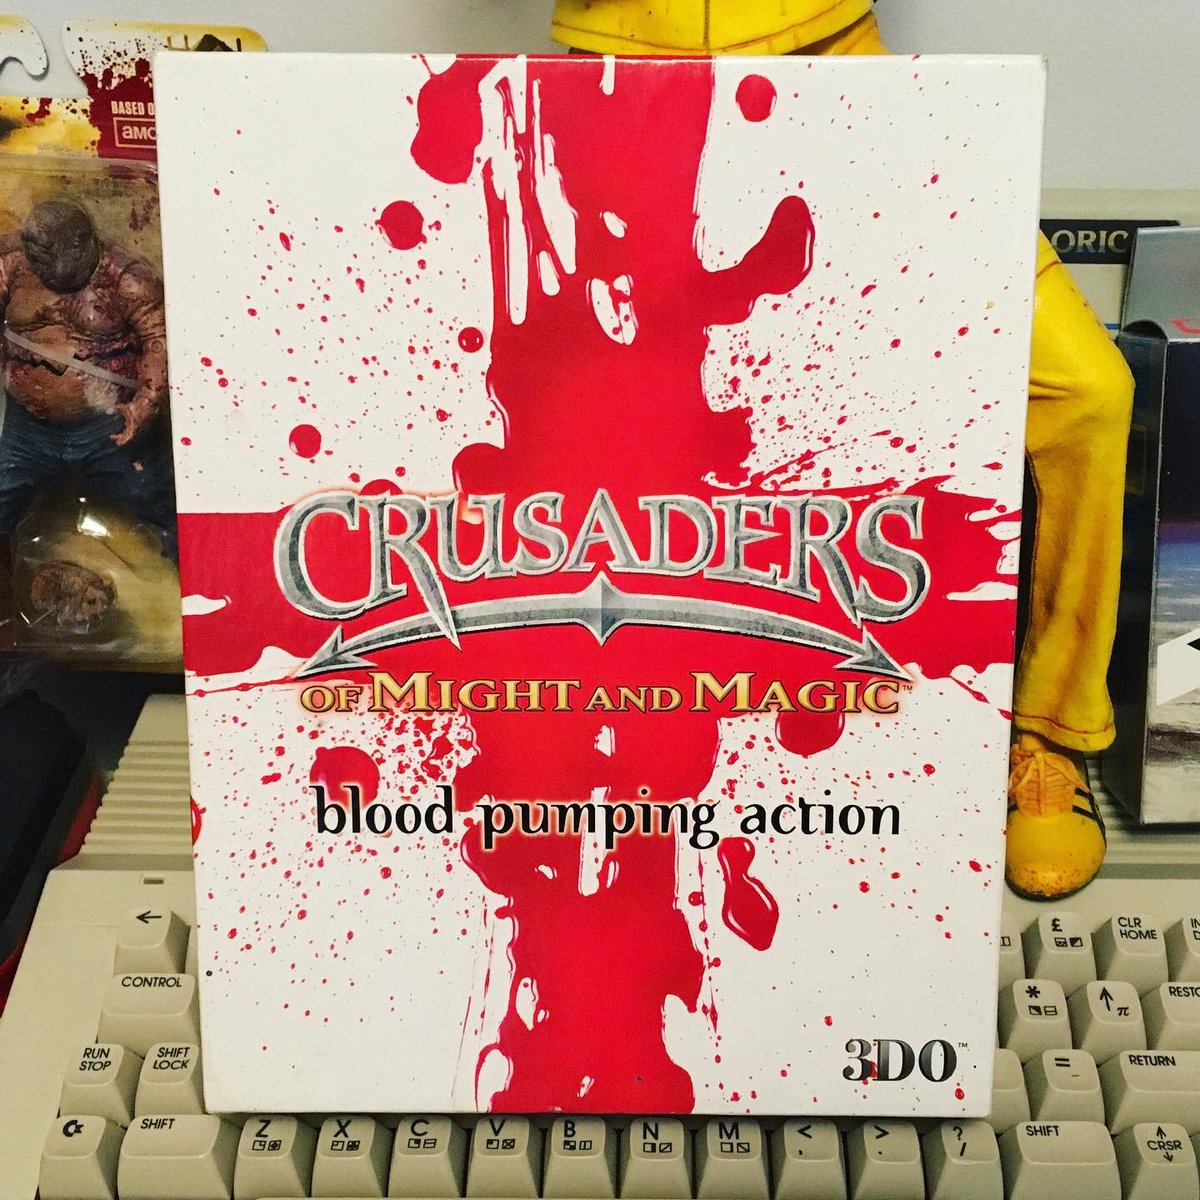 Crusaders of Might and Magic - 3DO - PC Action Role-playing Game - 1999 #crusadersofmightandmagic #roleplayinggame #retrogaming #retrogamer #retrogames #pc #pcgames #3do #gameroom #collectibles #popculture #windows98 #mightandmagic #1990s #bigboxgamespic.twitter.com/kyKaPPcxM7